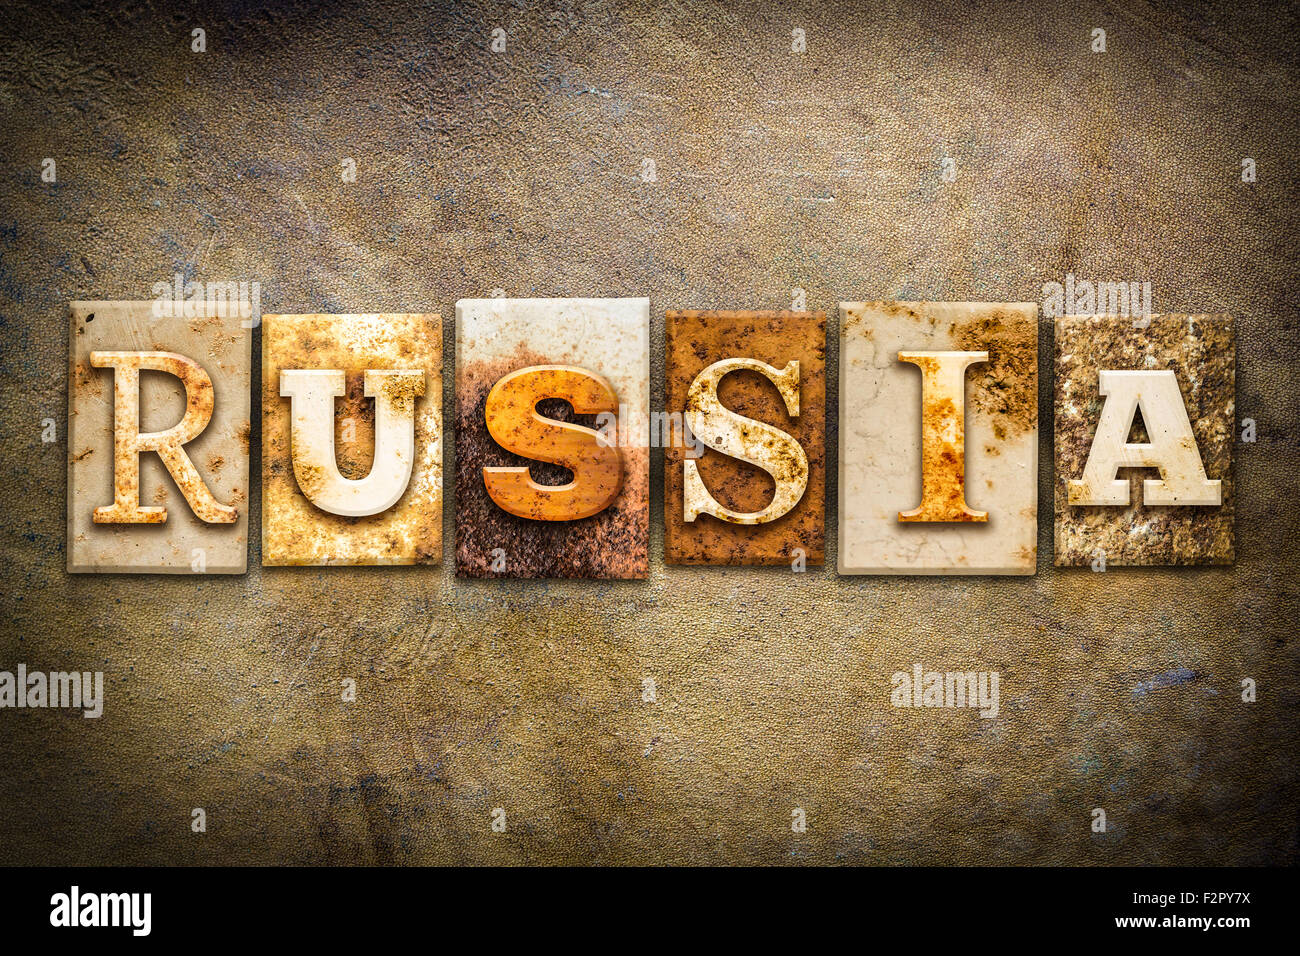 the word russia written in rusty metal letterpress type on an old aged leather